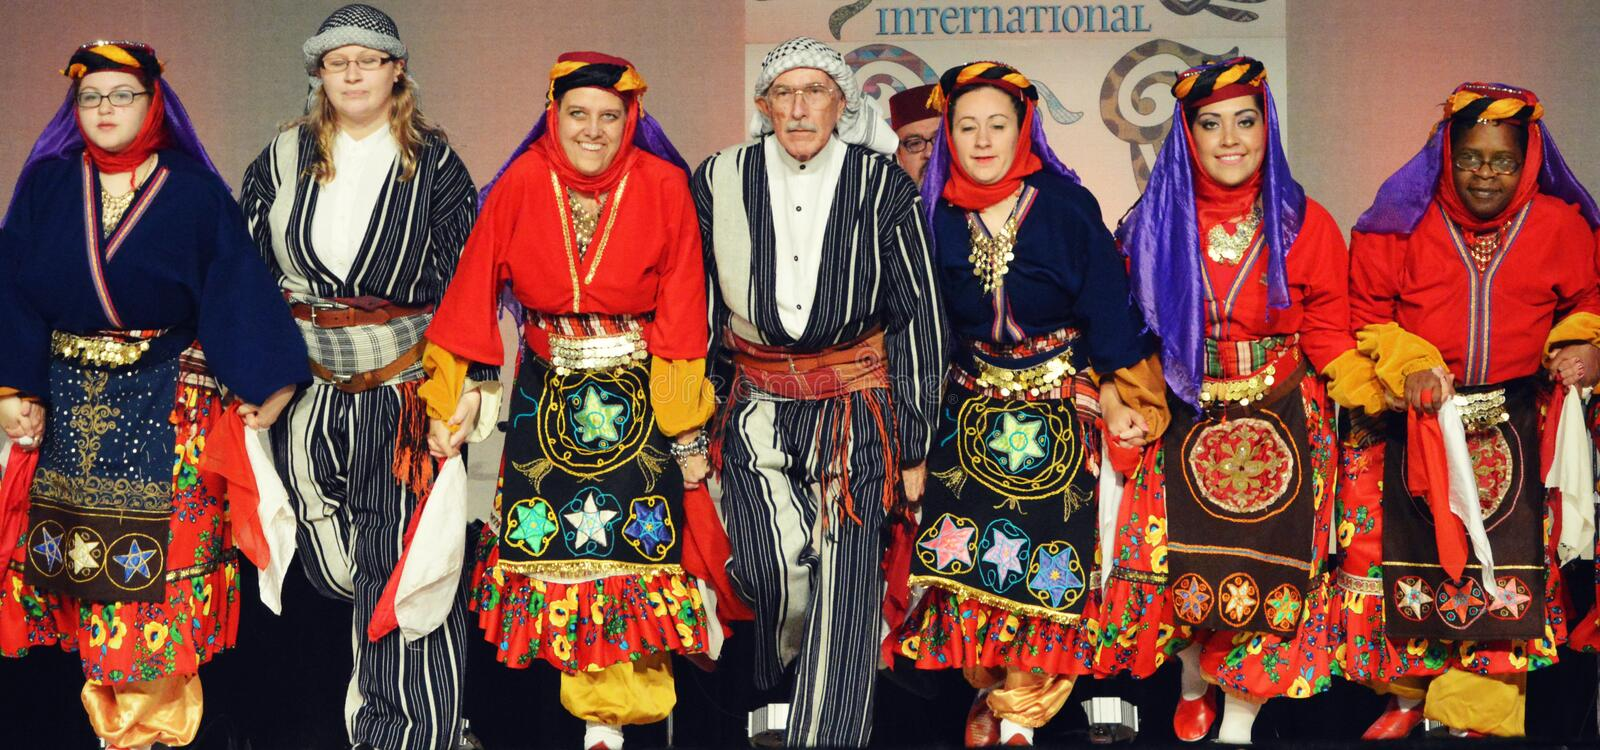 Elderly Man Dancing with Women. An elderly, retired man dancing with a group of women in traditional Middle Eastern dress at the Holiday Folk Fair International stock photography